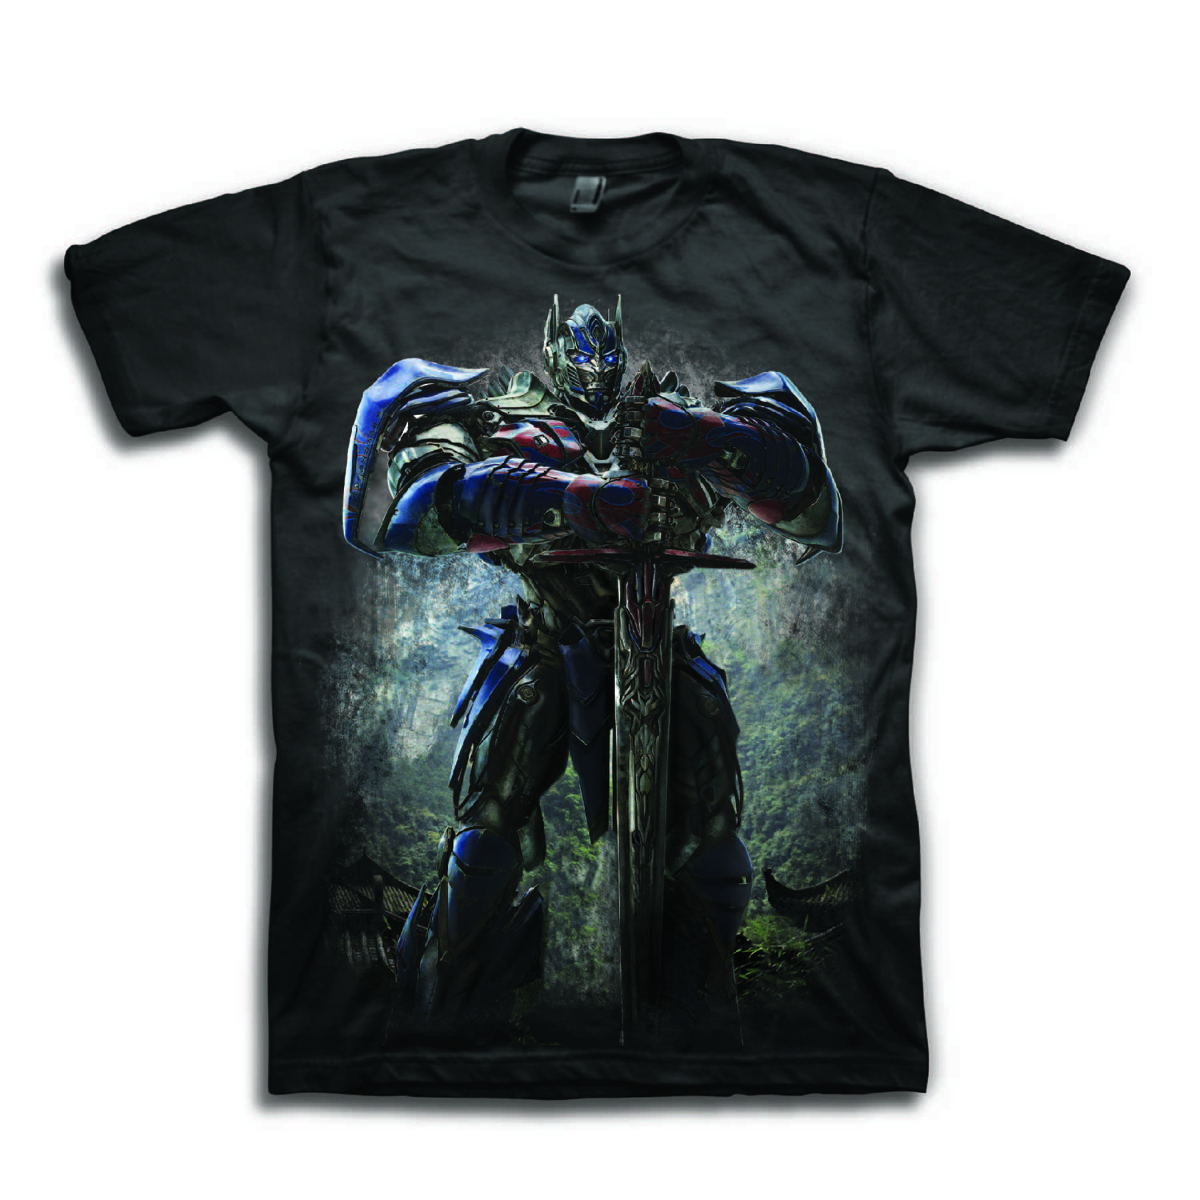 TF EXTINTION OPTIMUS SWORD PX BLK T/S XL